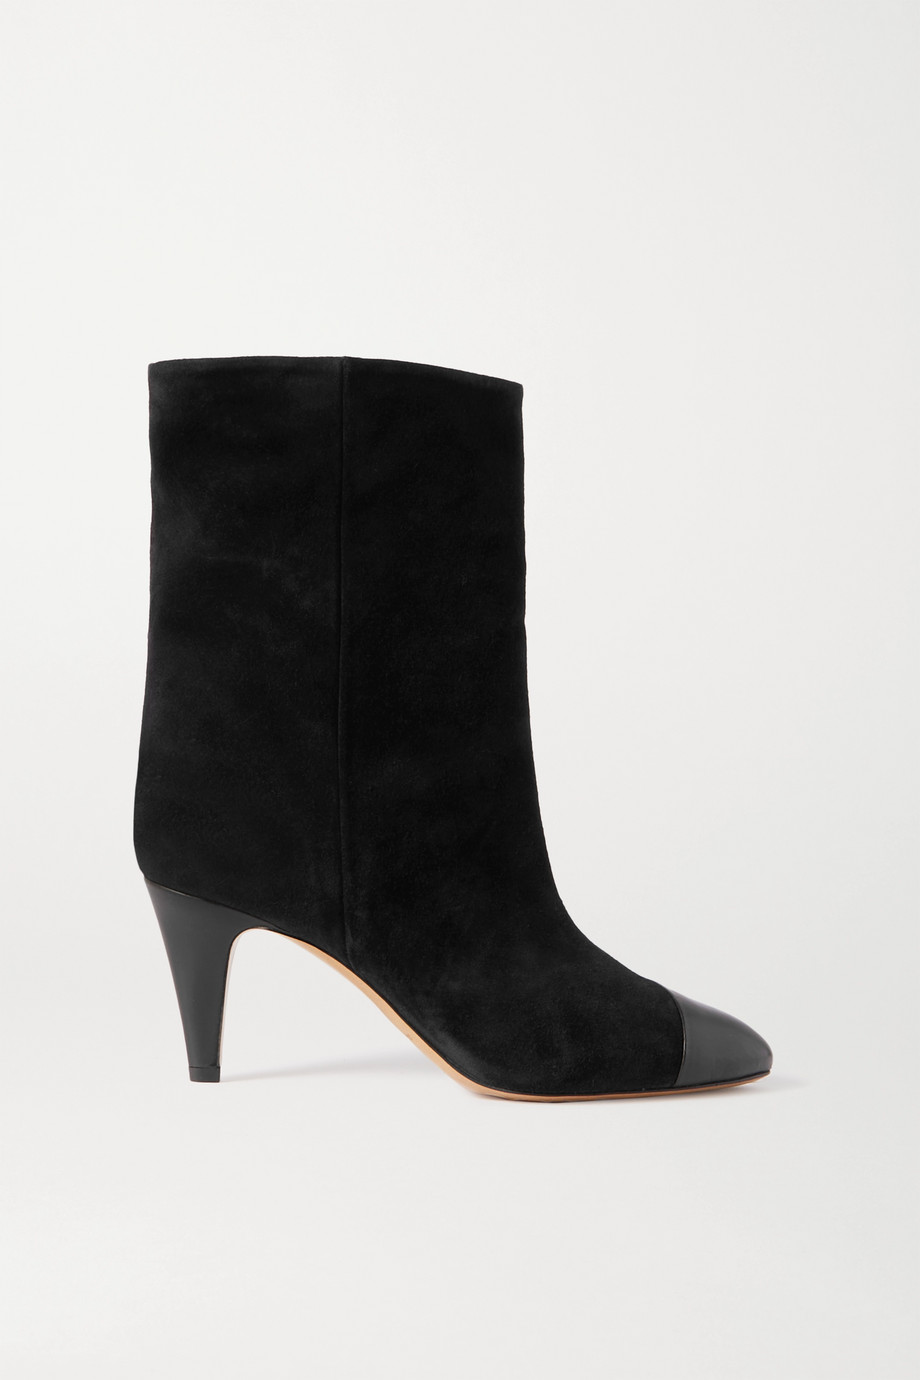 ISABEL MARANT Lacco leather-trimmed suede ankle boots